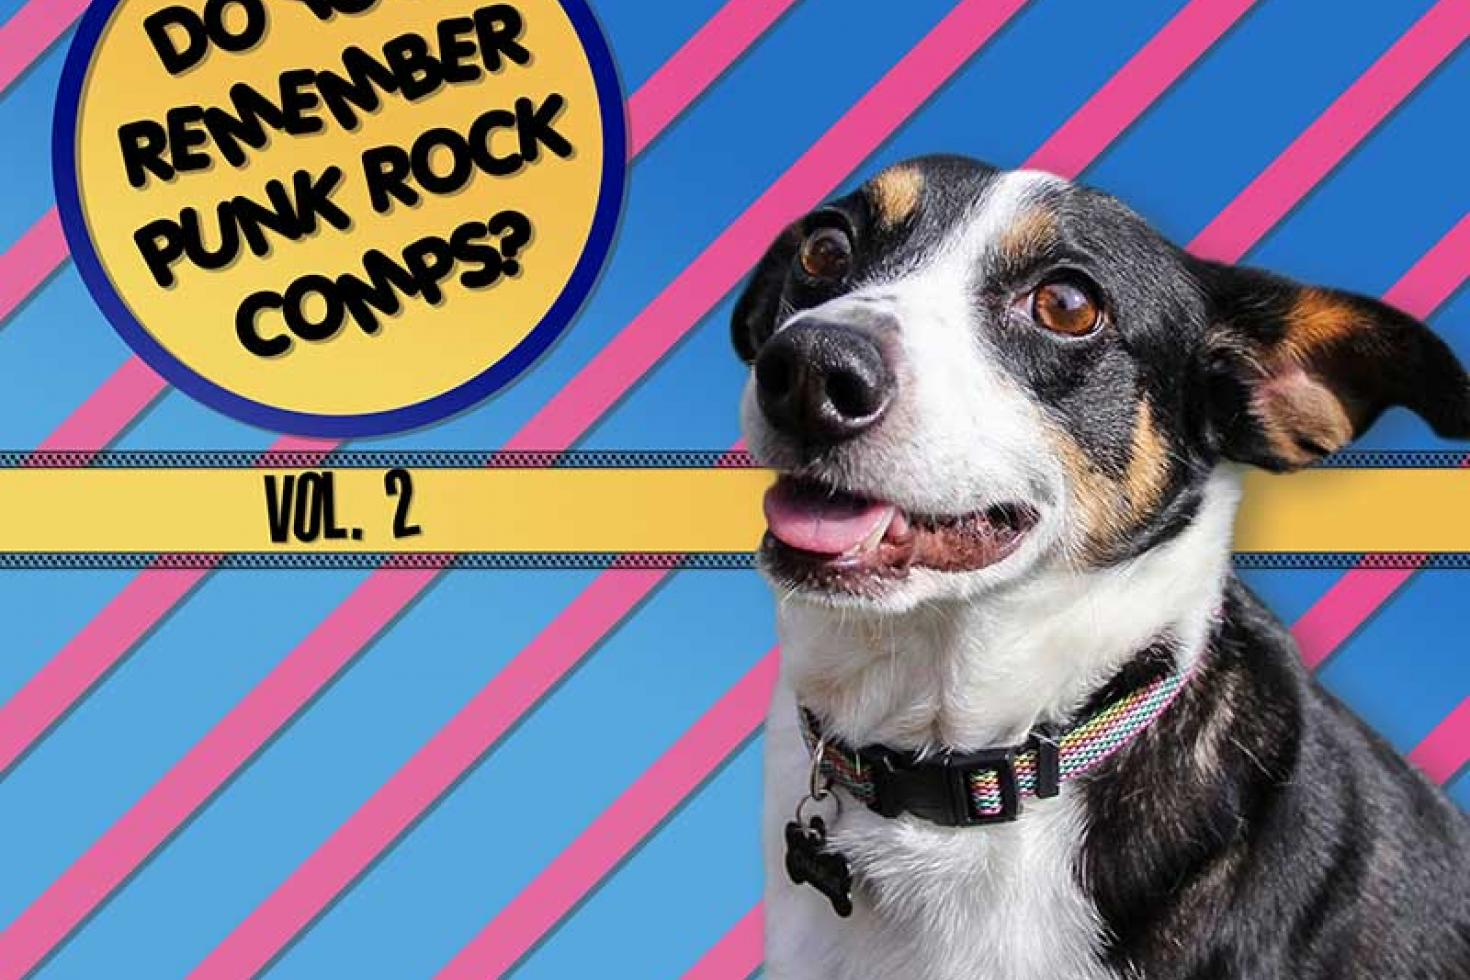 PREMIERE: Hidden Home Records shares free comp 'Do You Remember Punk Rock Comps? Vol. 2'